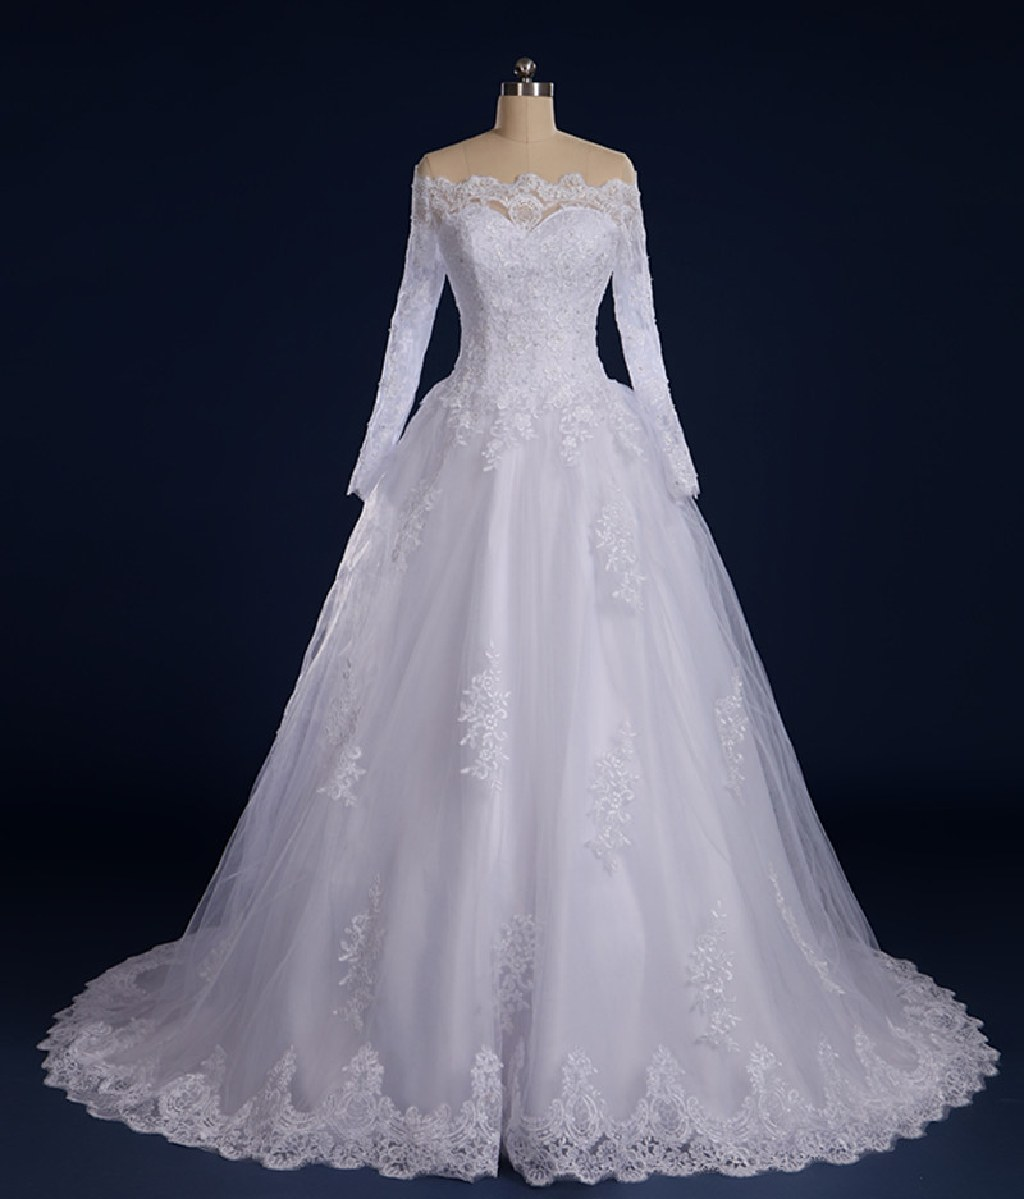 Lupita39s lace a line wedding dress 450 tyler tx for Wedding dresses tyler tx